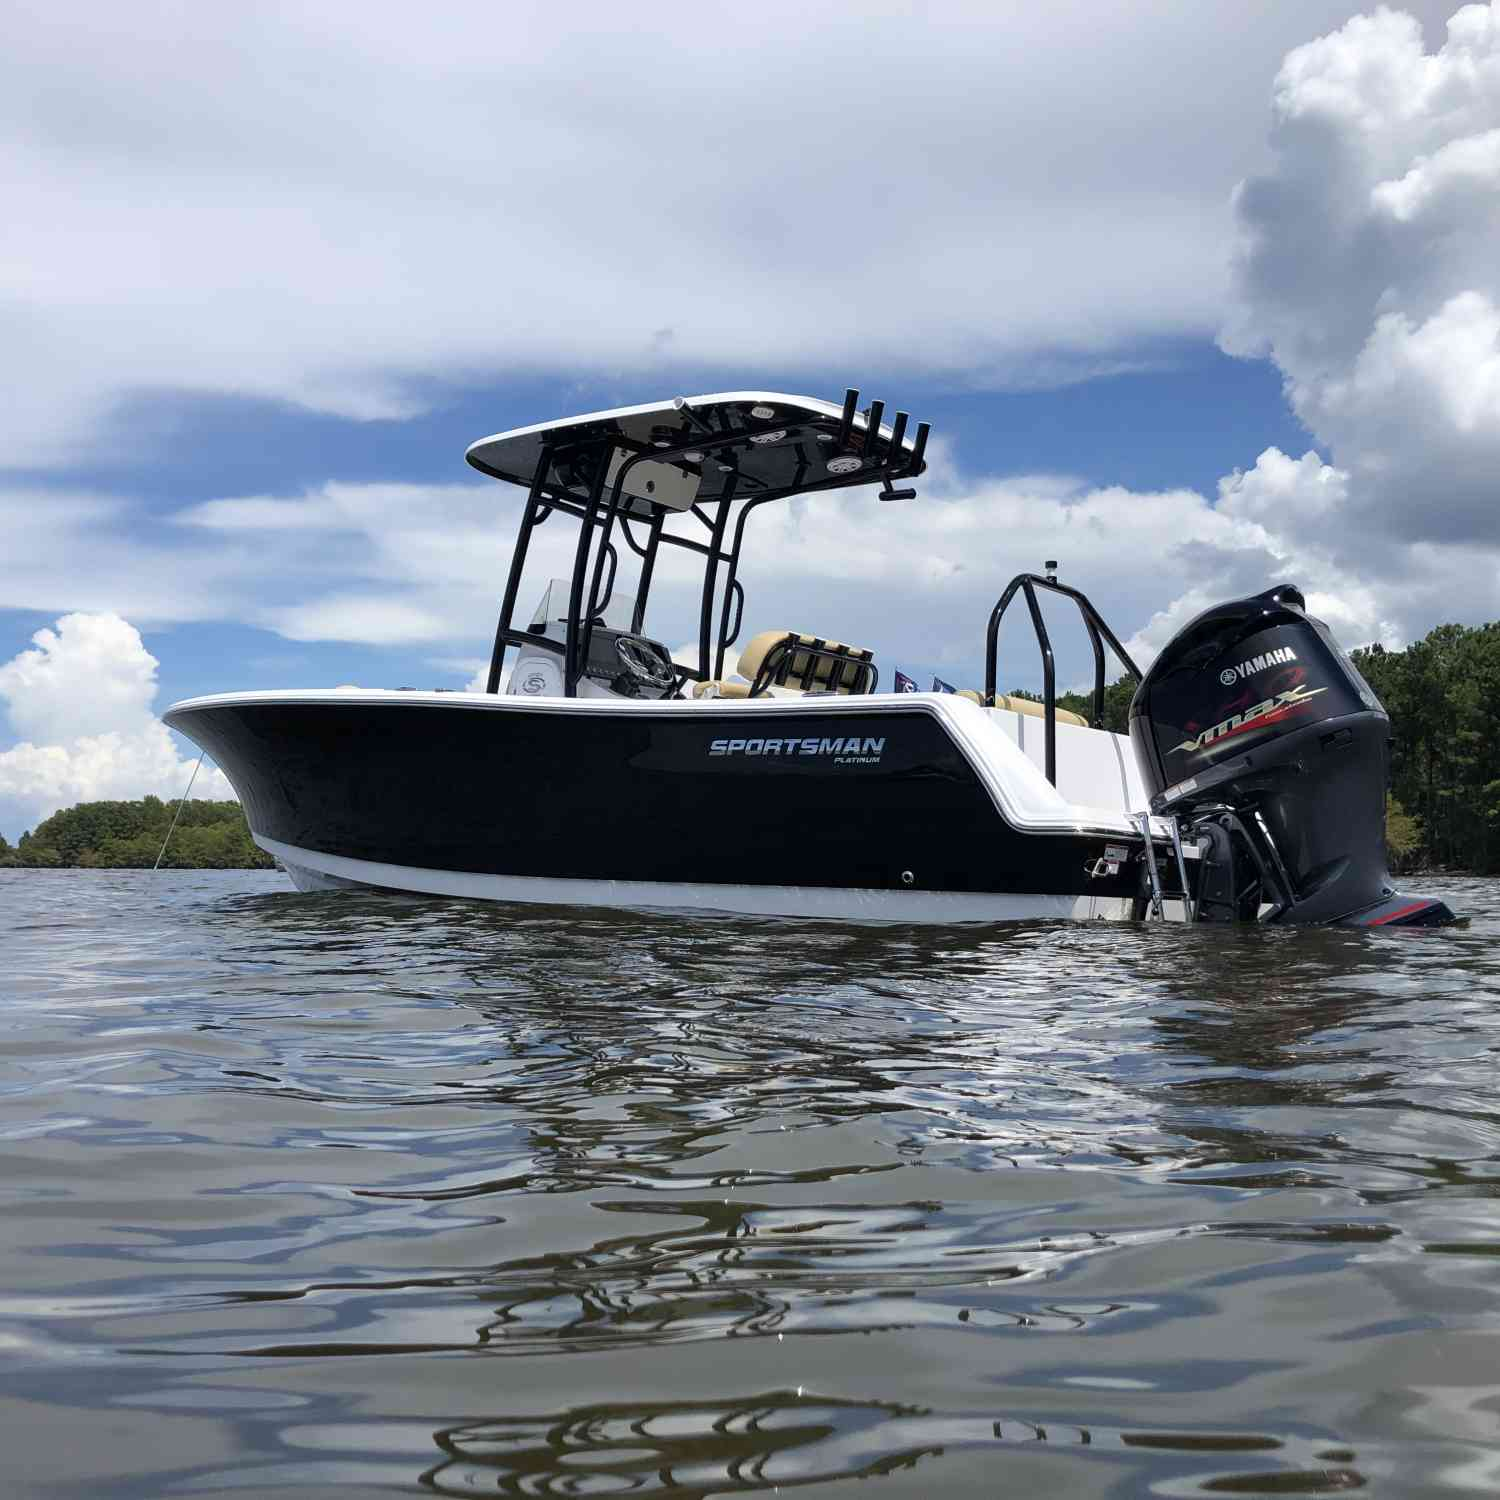 Title: The Maiden voyage - On board their Sportsman Open 232 Center Console - Location: Maiden voyage. Participating in the Photo Contest #SportsmanAugust2020